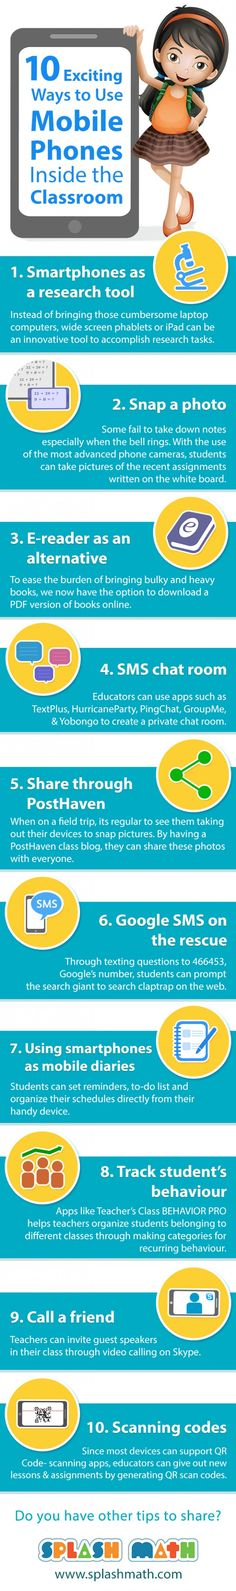 10 Exciting Ways to Use Mobile Phones In the Classroom Infographic - http://elearninginfographics.com/10-exciting-ways-to-use-mobile-phones-in-the-classroom-infographic/